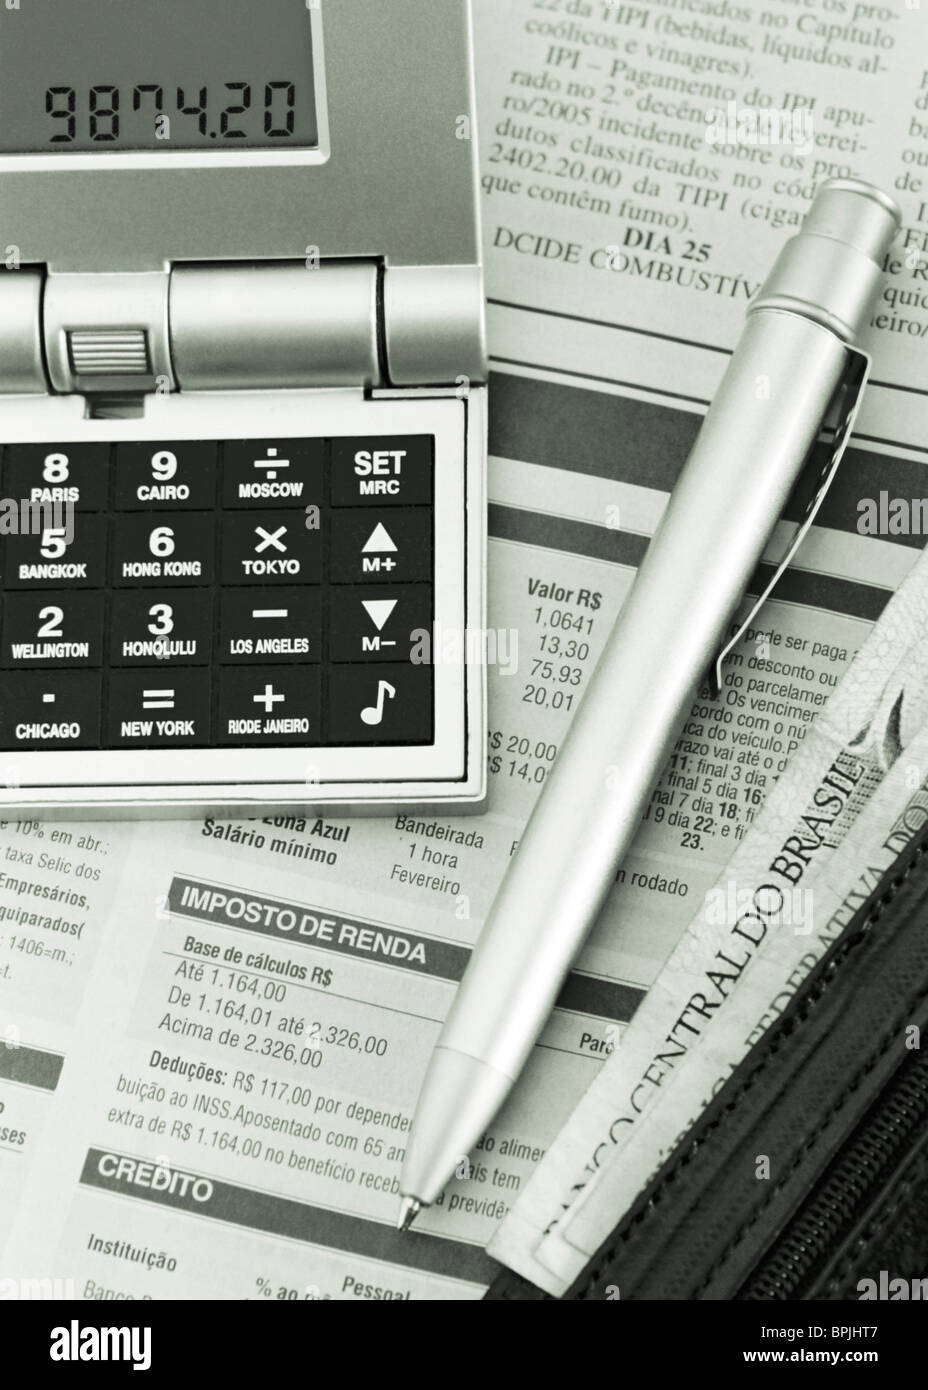 newspaper, calculator with Brazilian Real bank notes, pen, elevated view, close-up - Stock Image